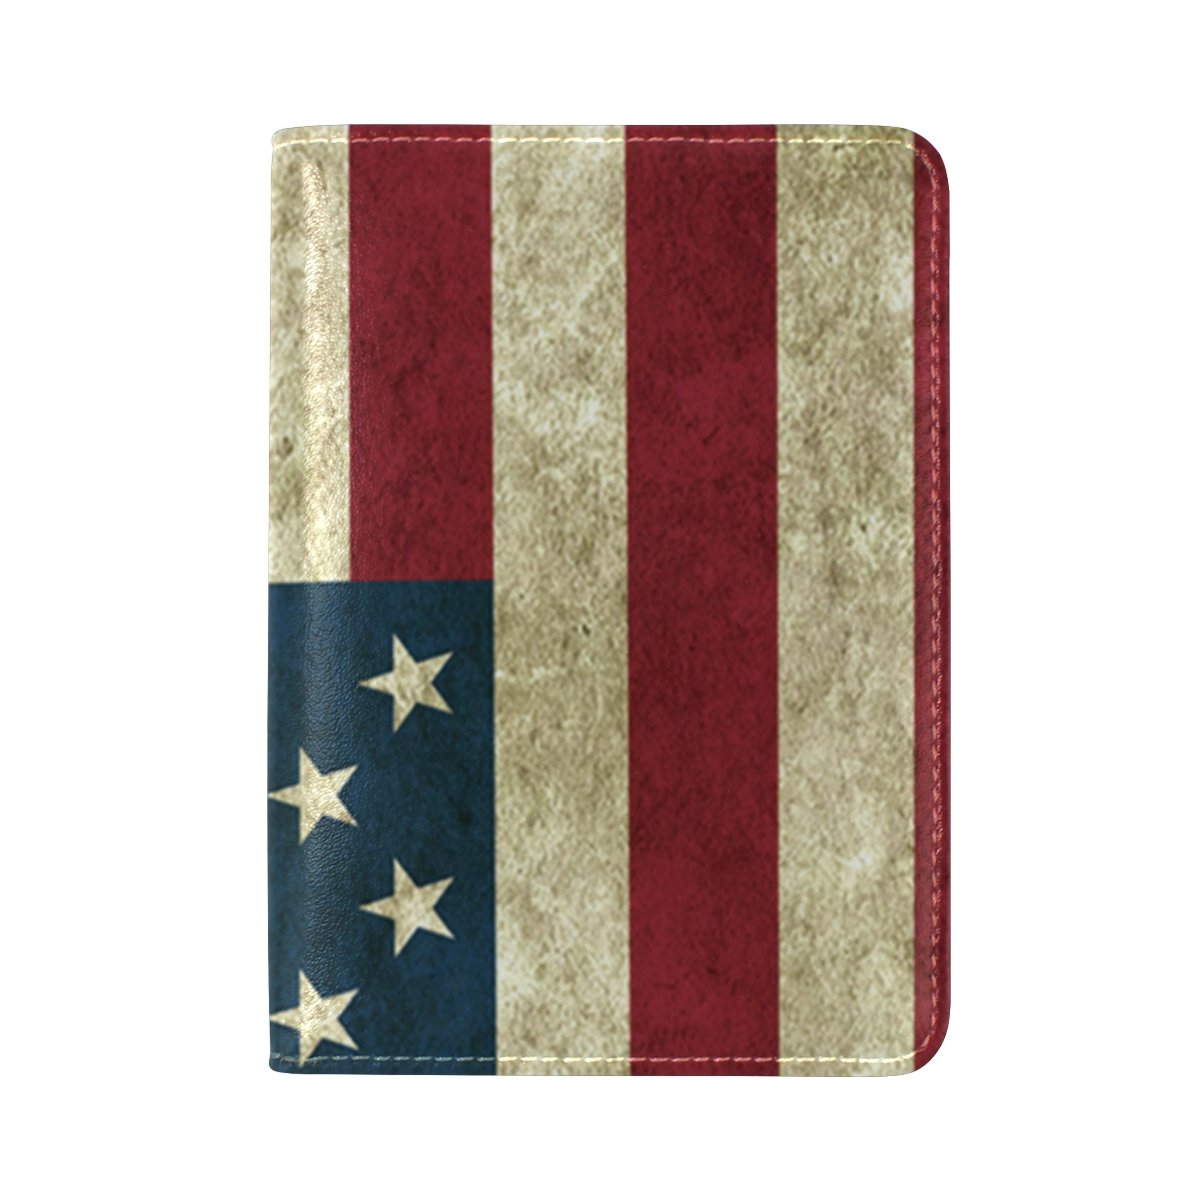 FeiHuang USA Flag Genuine Leather Passport Case Holder Cover Protector for Travel Men Women DIY Pattern as Gift